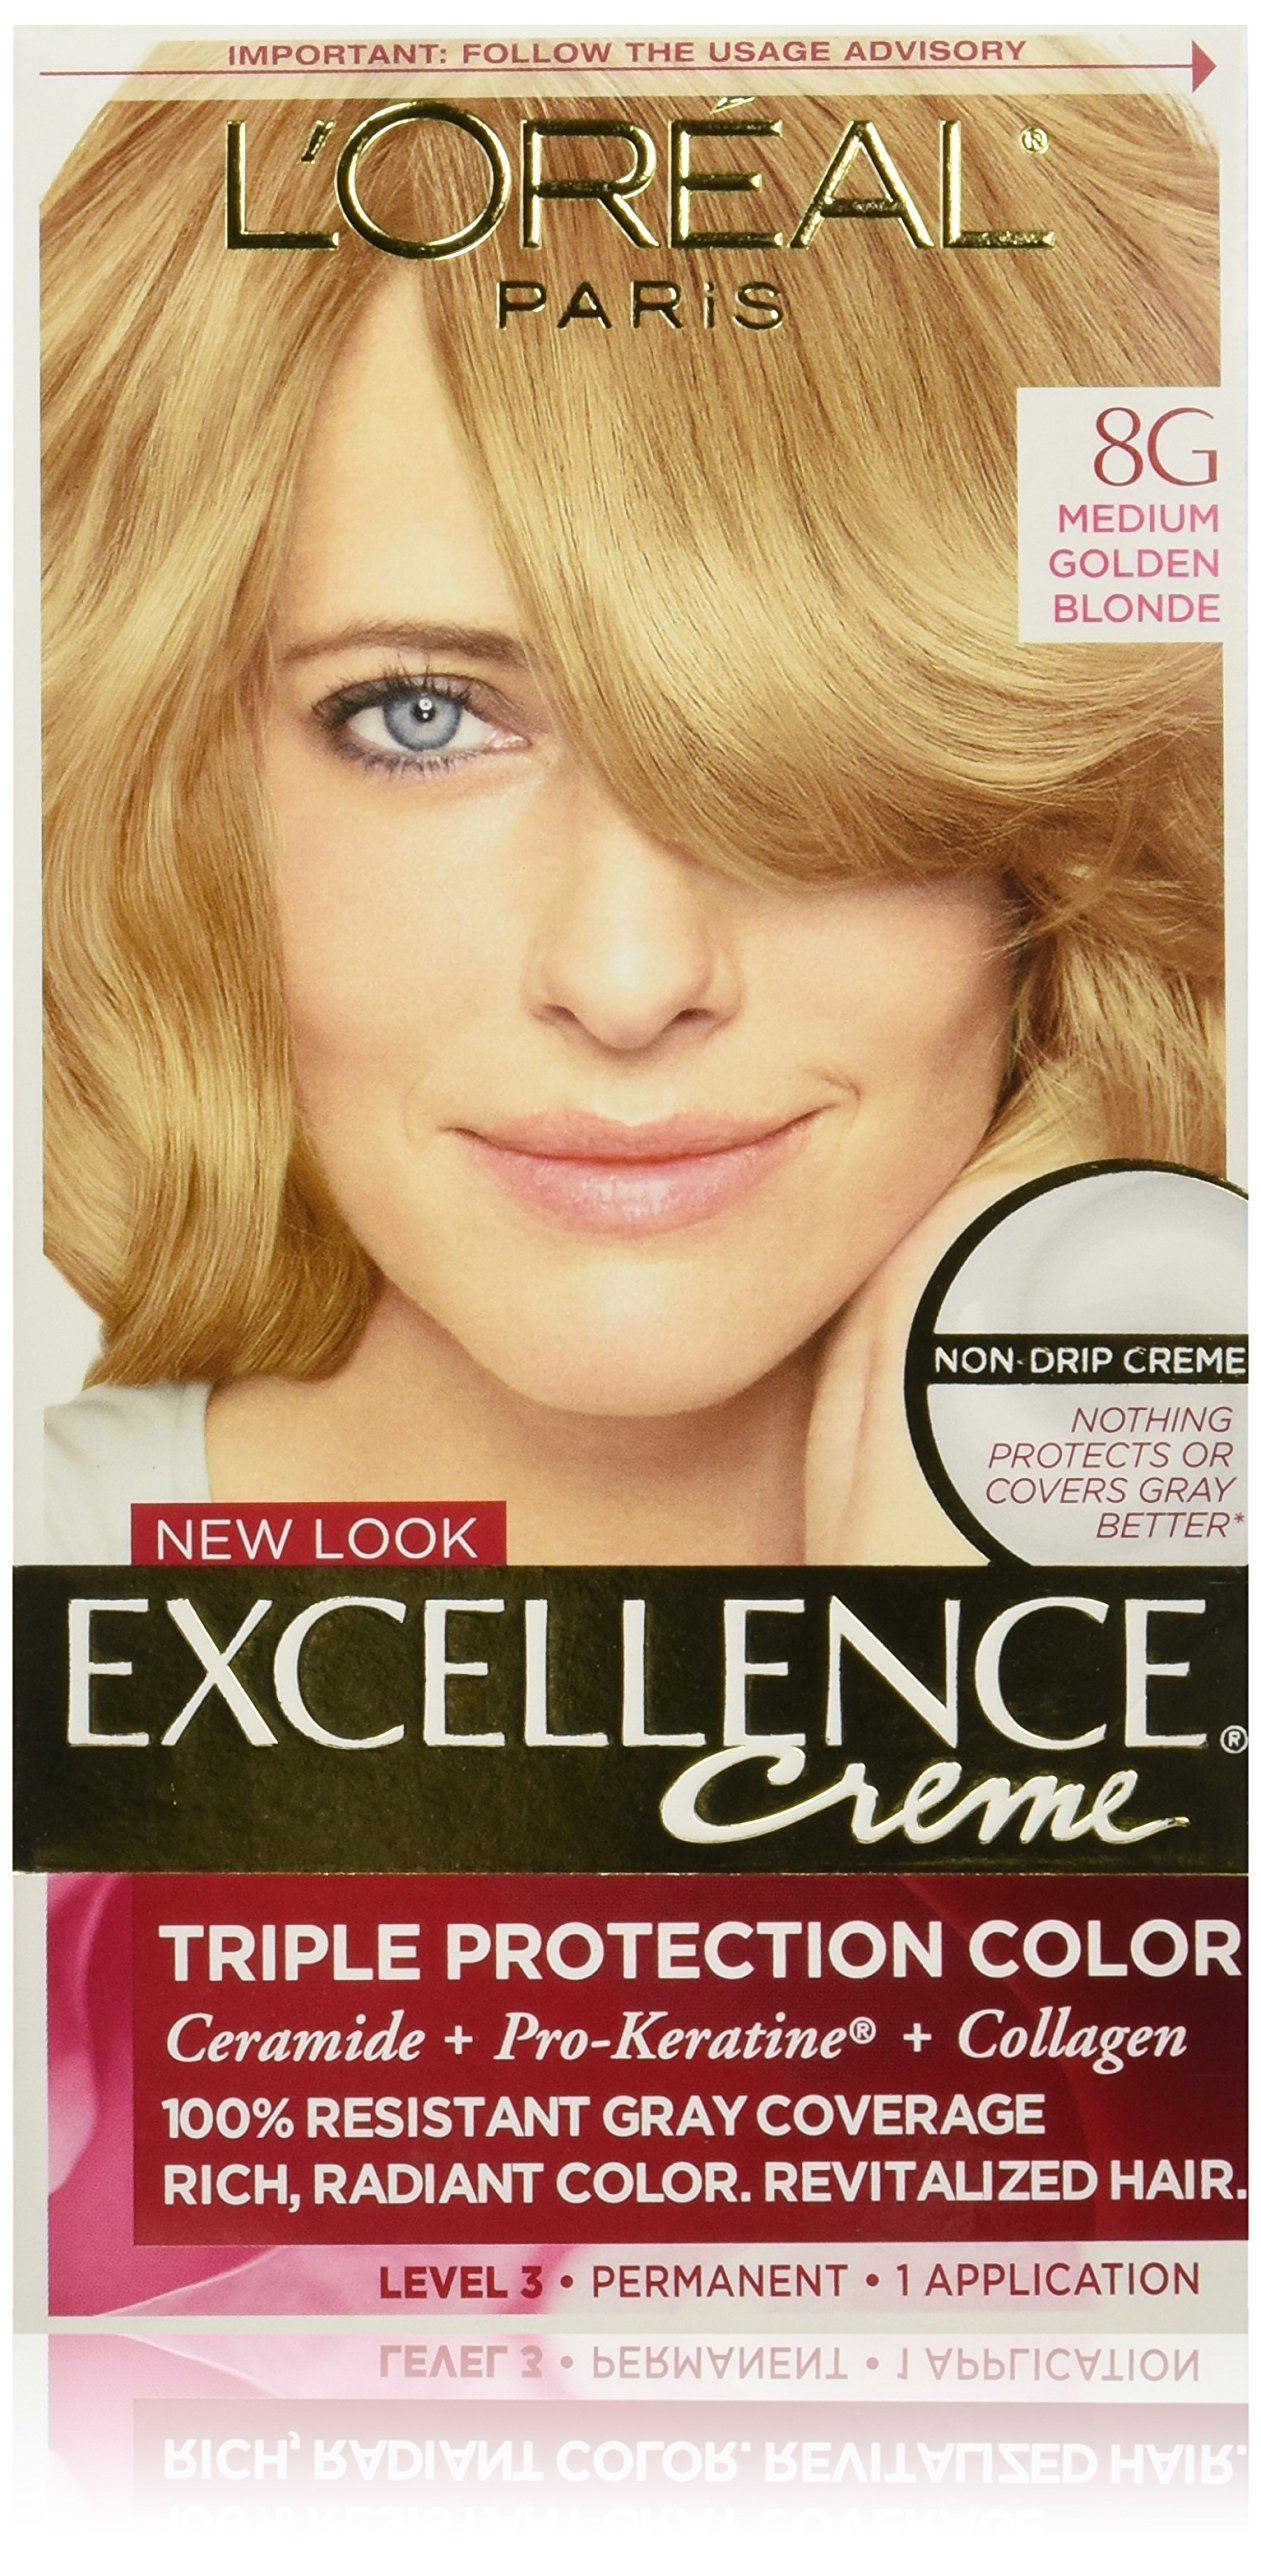 Amazon Loral Paris Excellence Crme Permanent Hair Color 8g